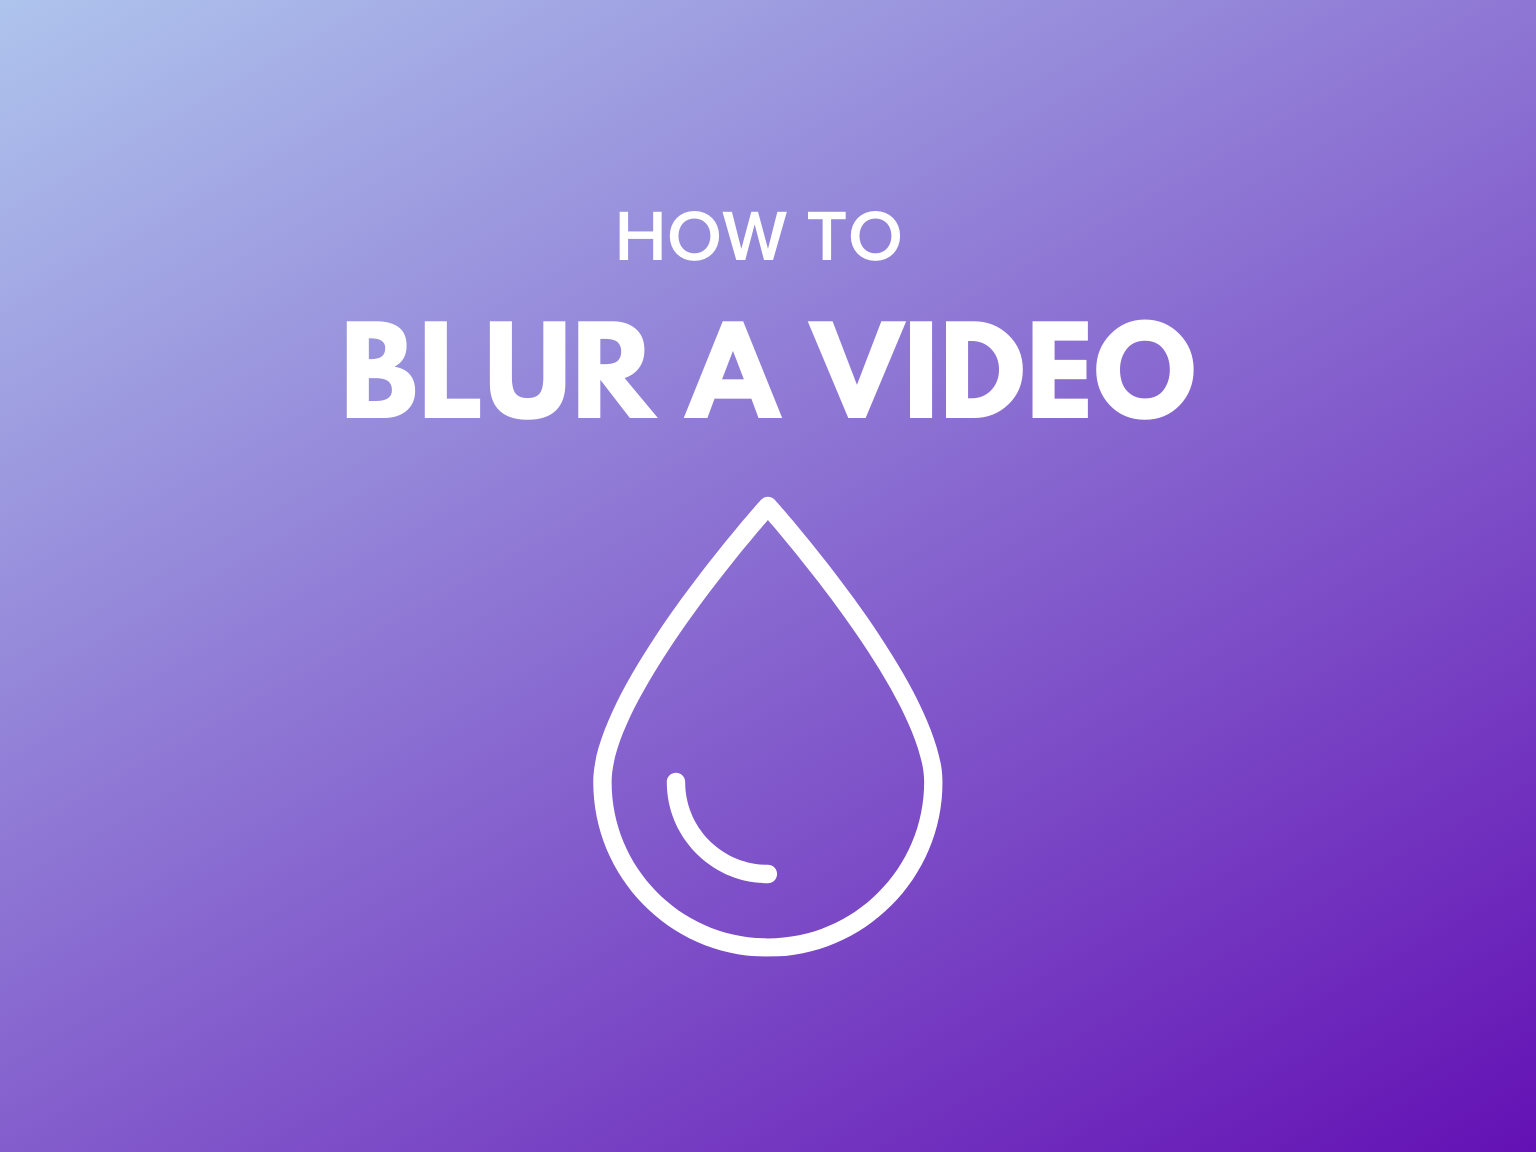 How to Blur a Video